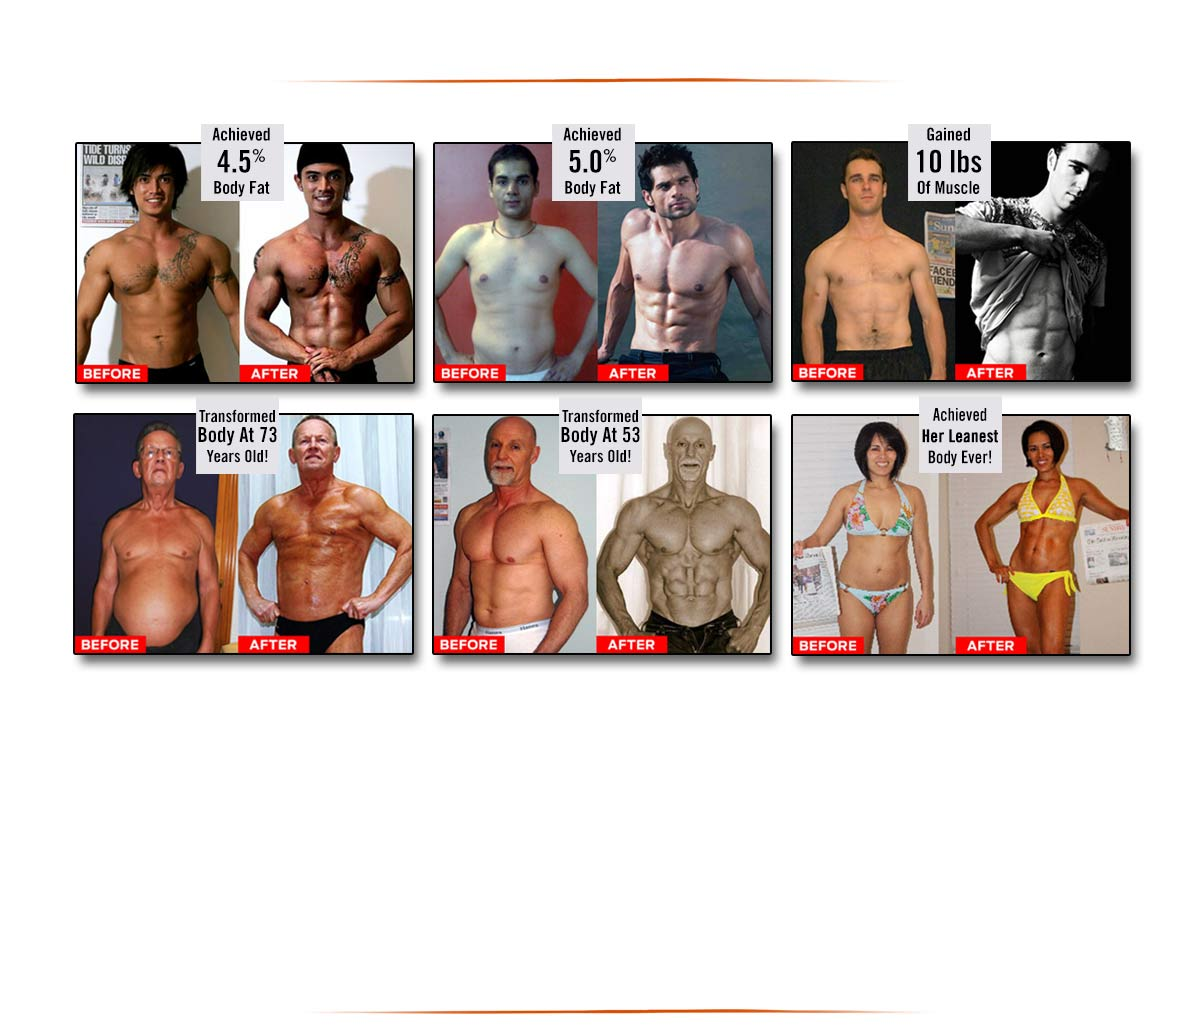 Before & After pictures showing the achievements of Maximize Your Muscle students